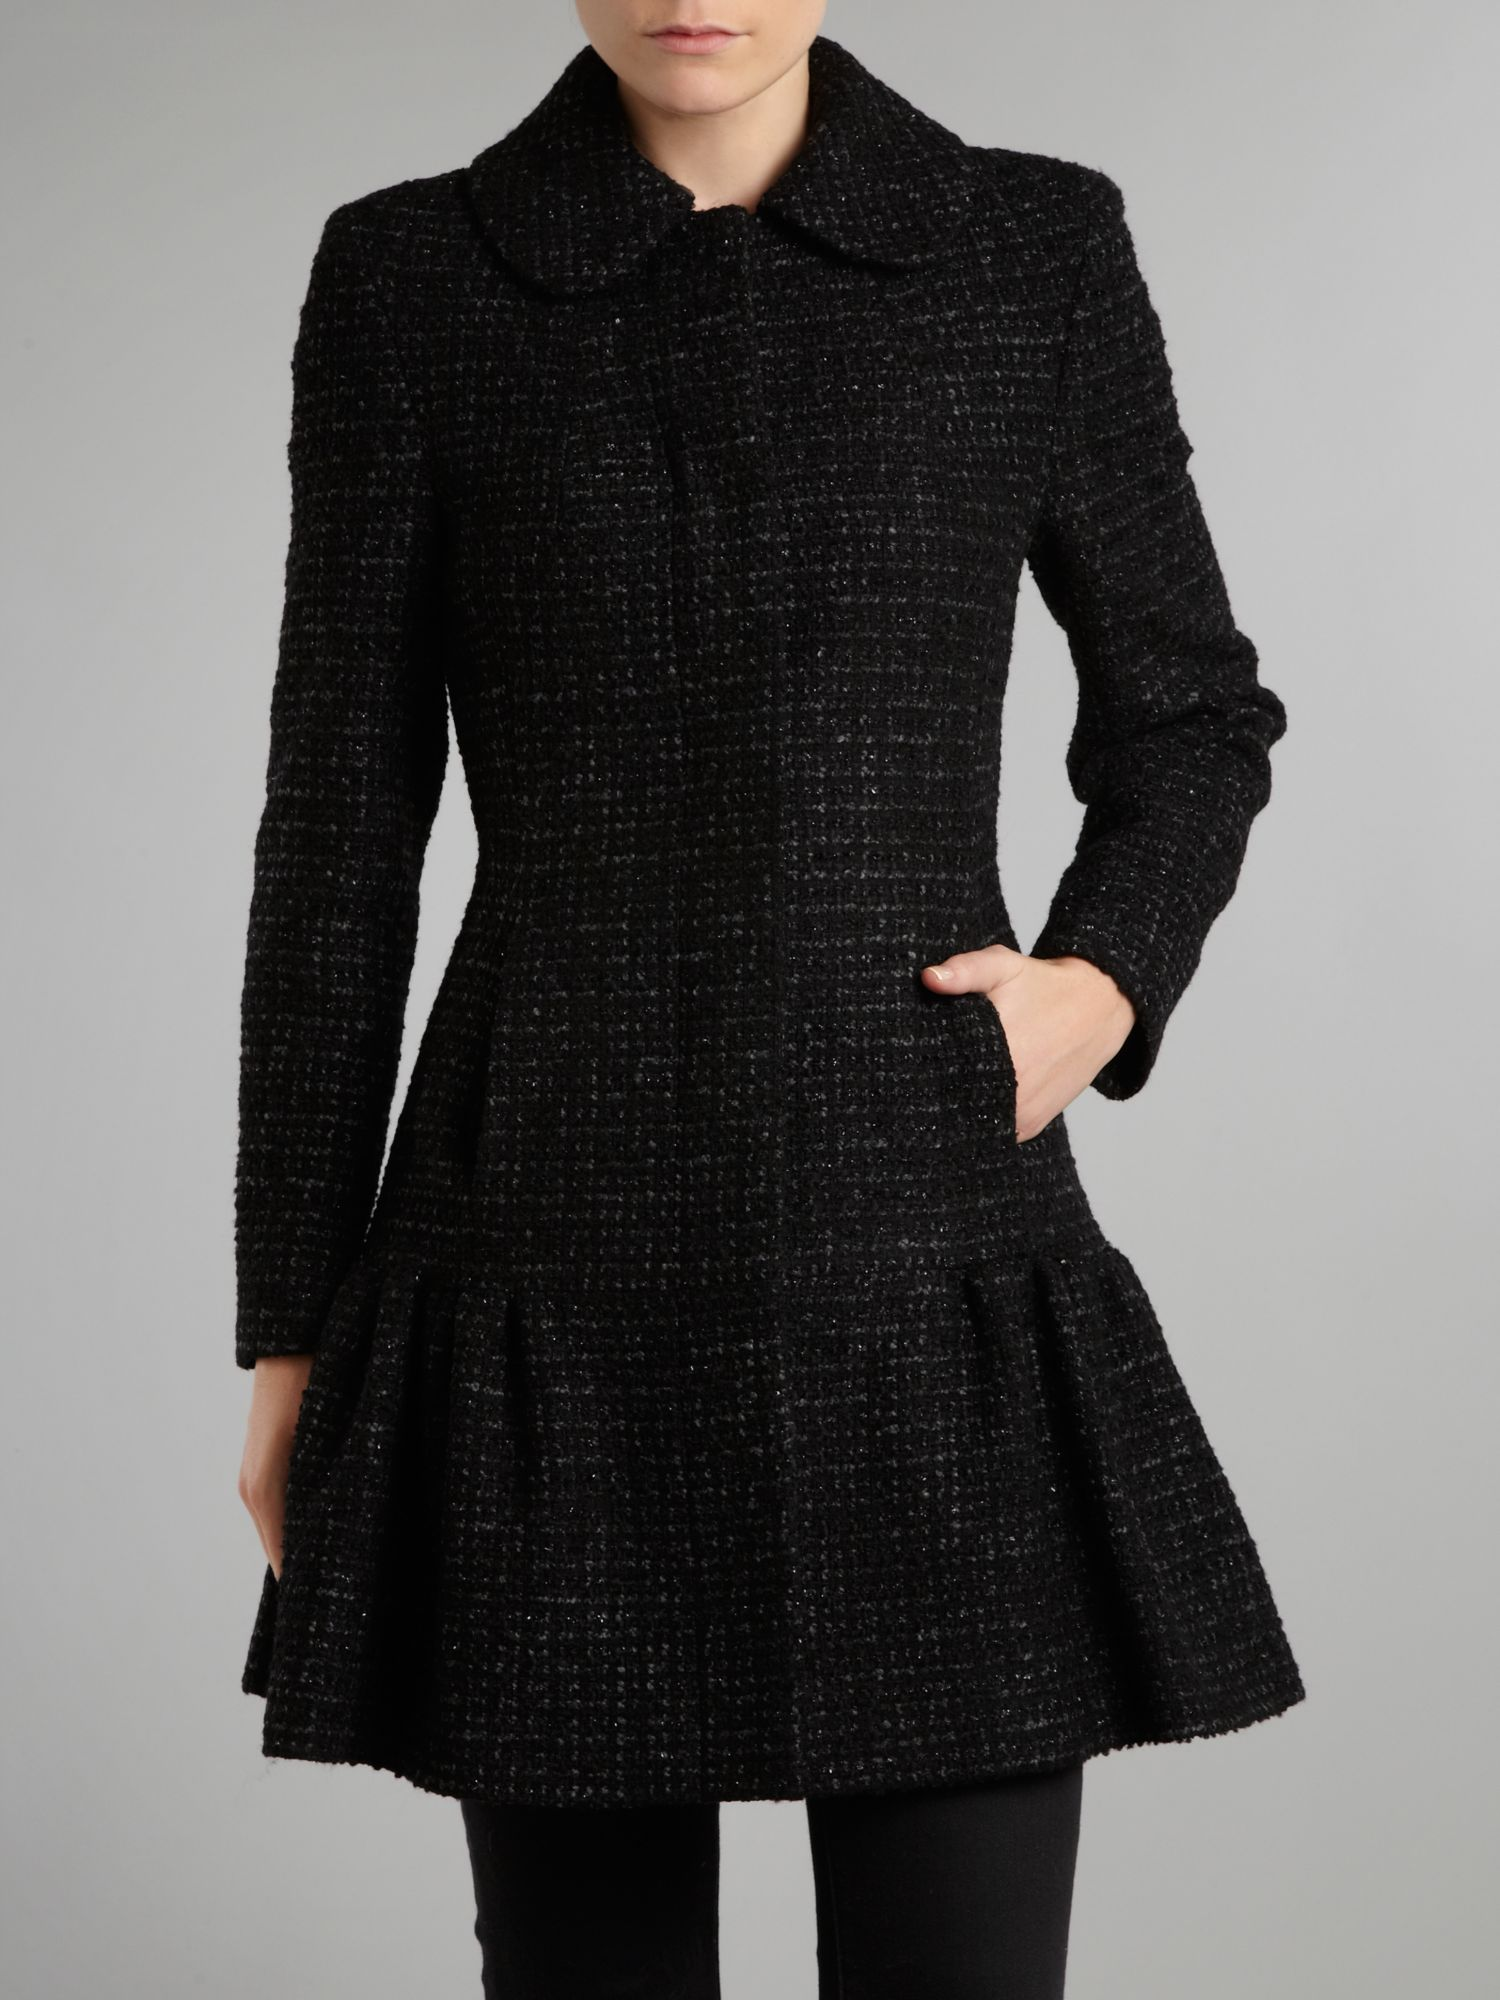 Sparkle wool frock coat